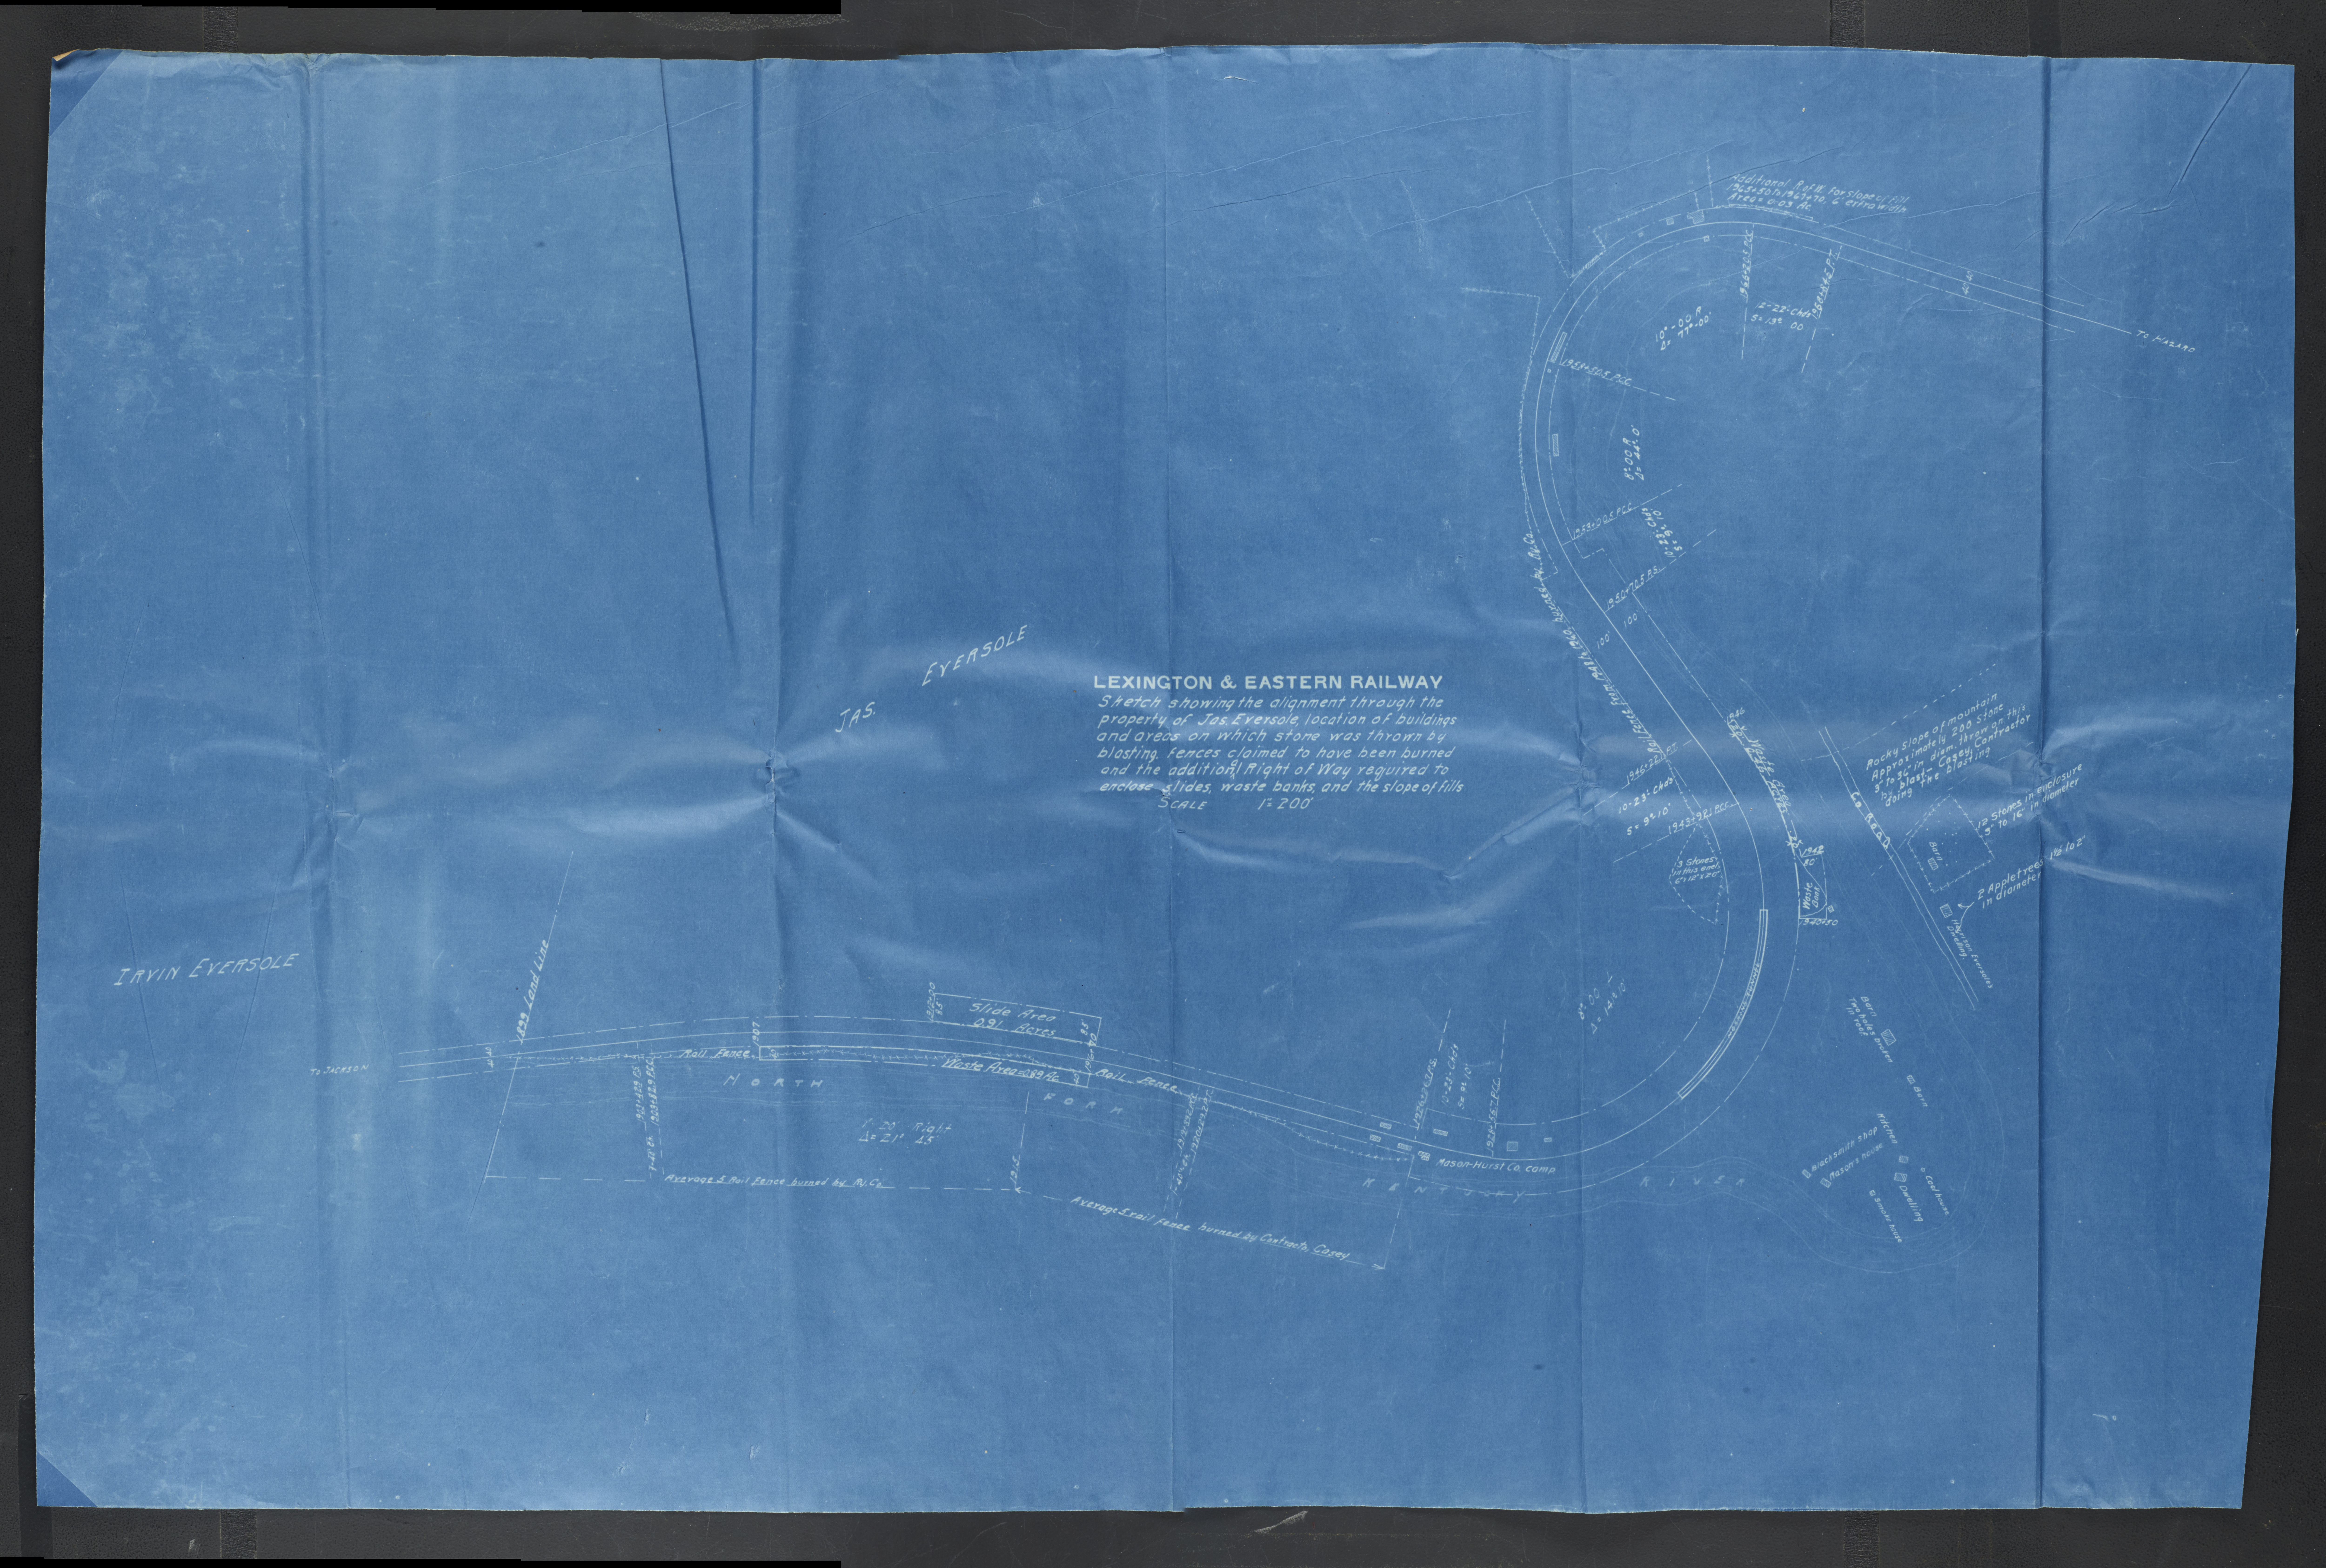 244b blueprint of sketch showing the alignment through the property part of louisville and nashville railroad company and lexington and eastern railway company records malvernweather Choice Image